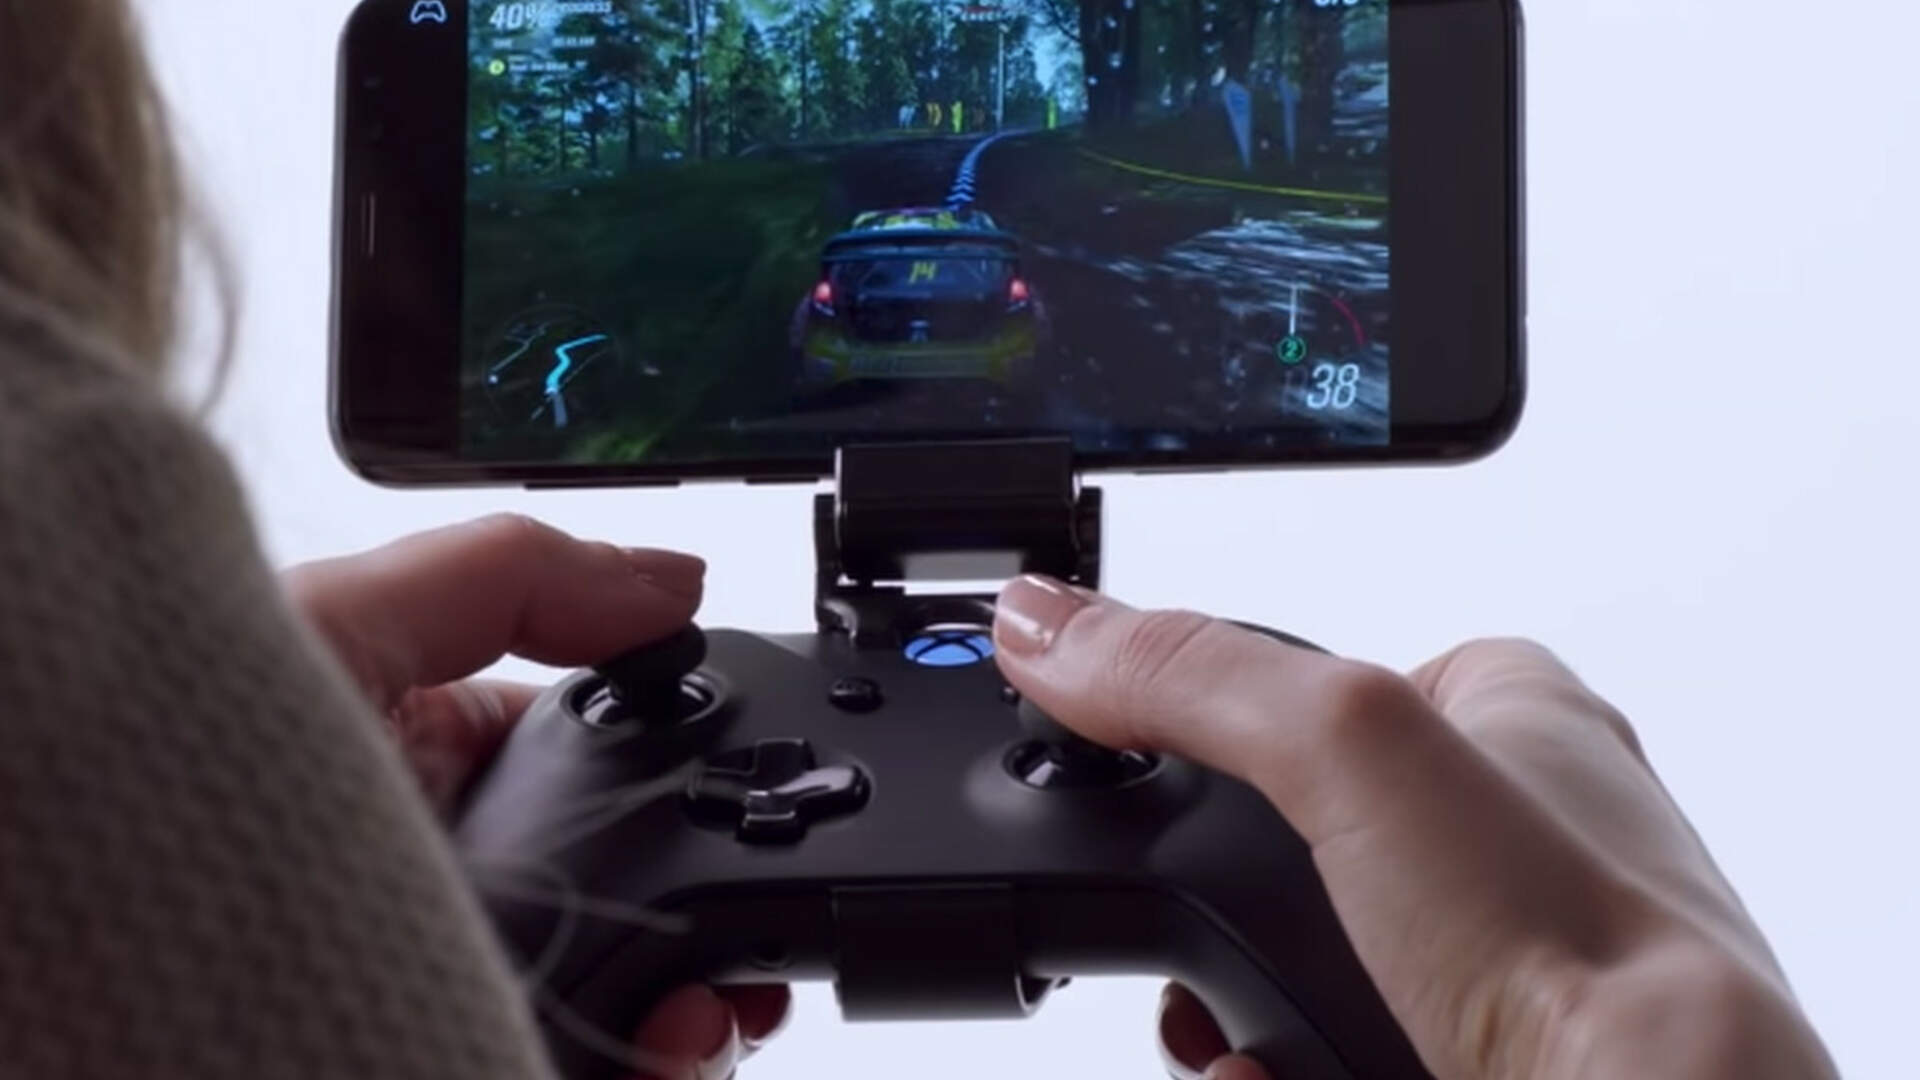 Project xCloud Comes to Android Devices Next Month